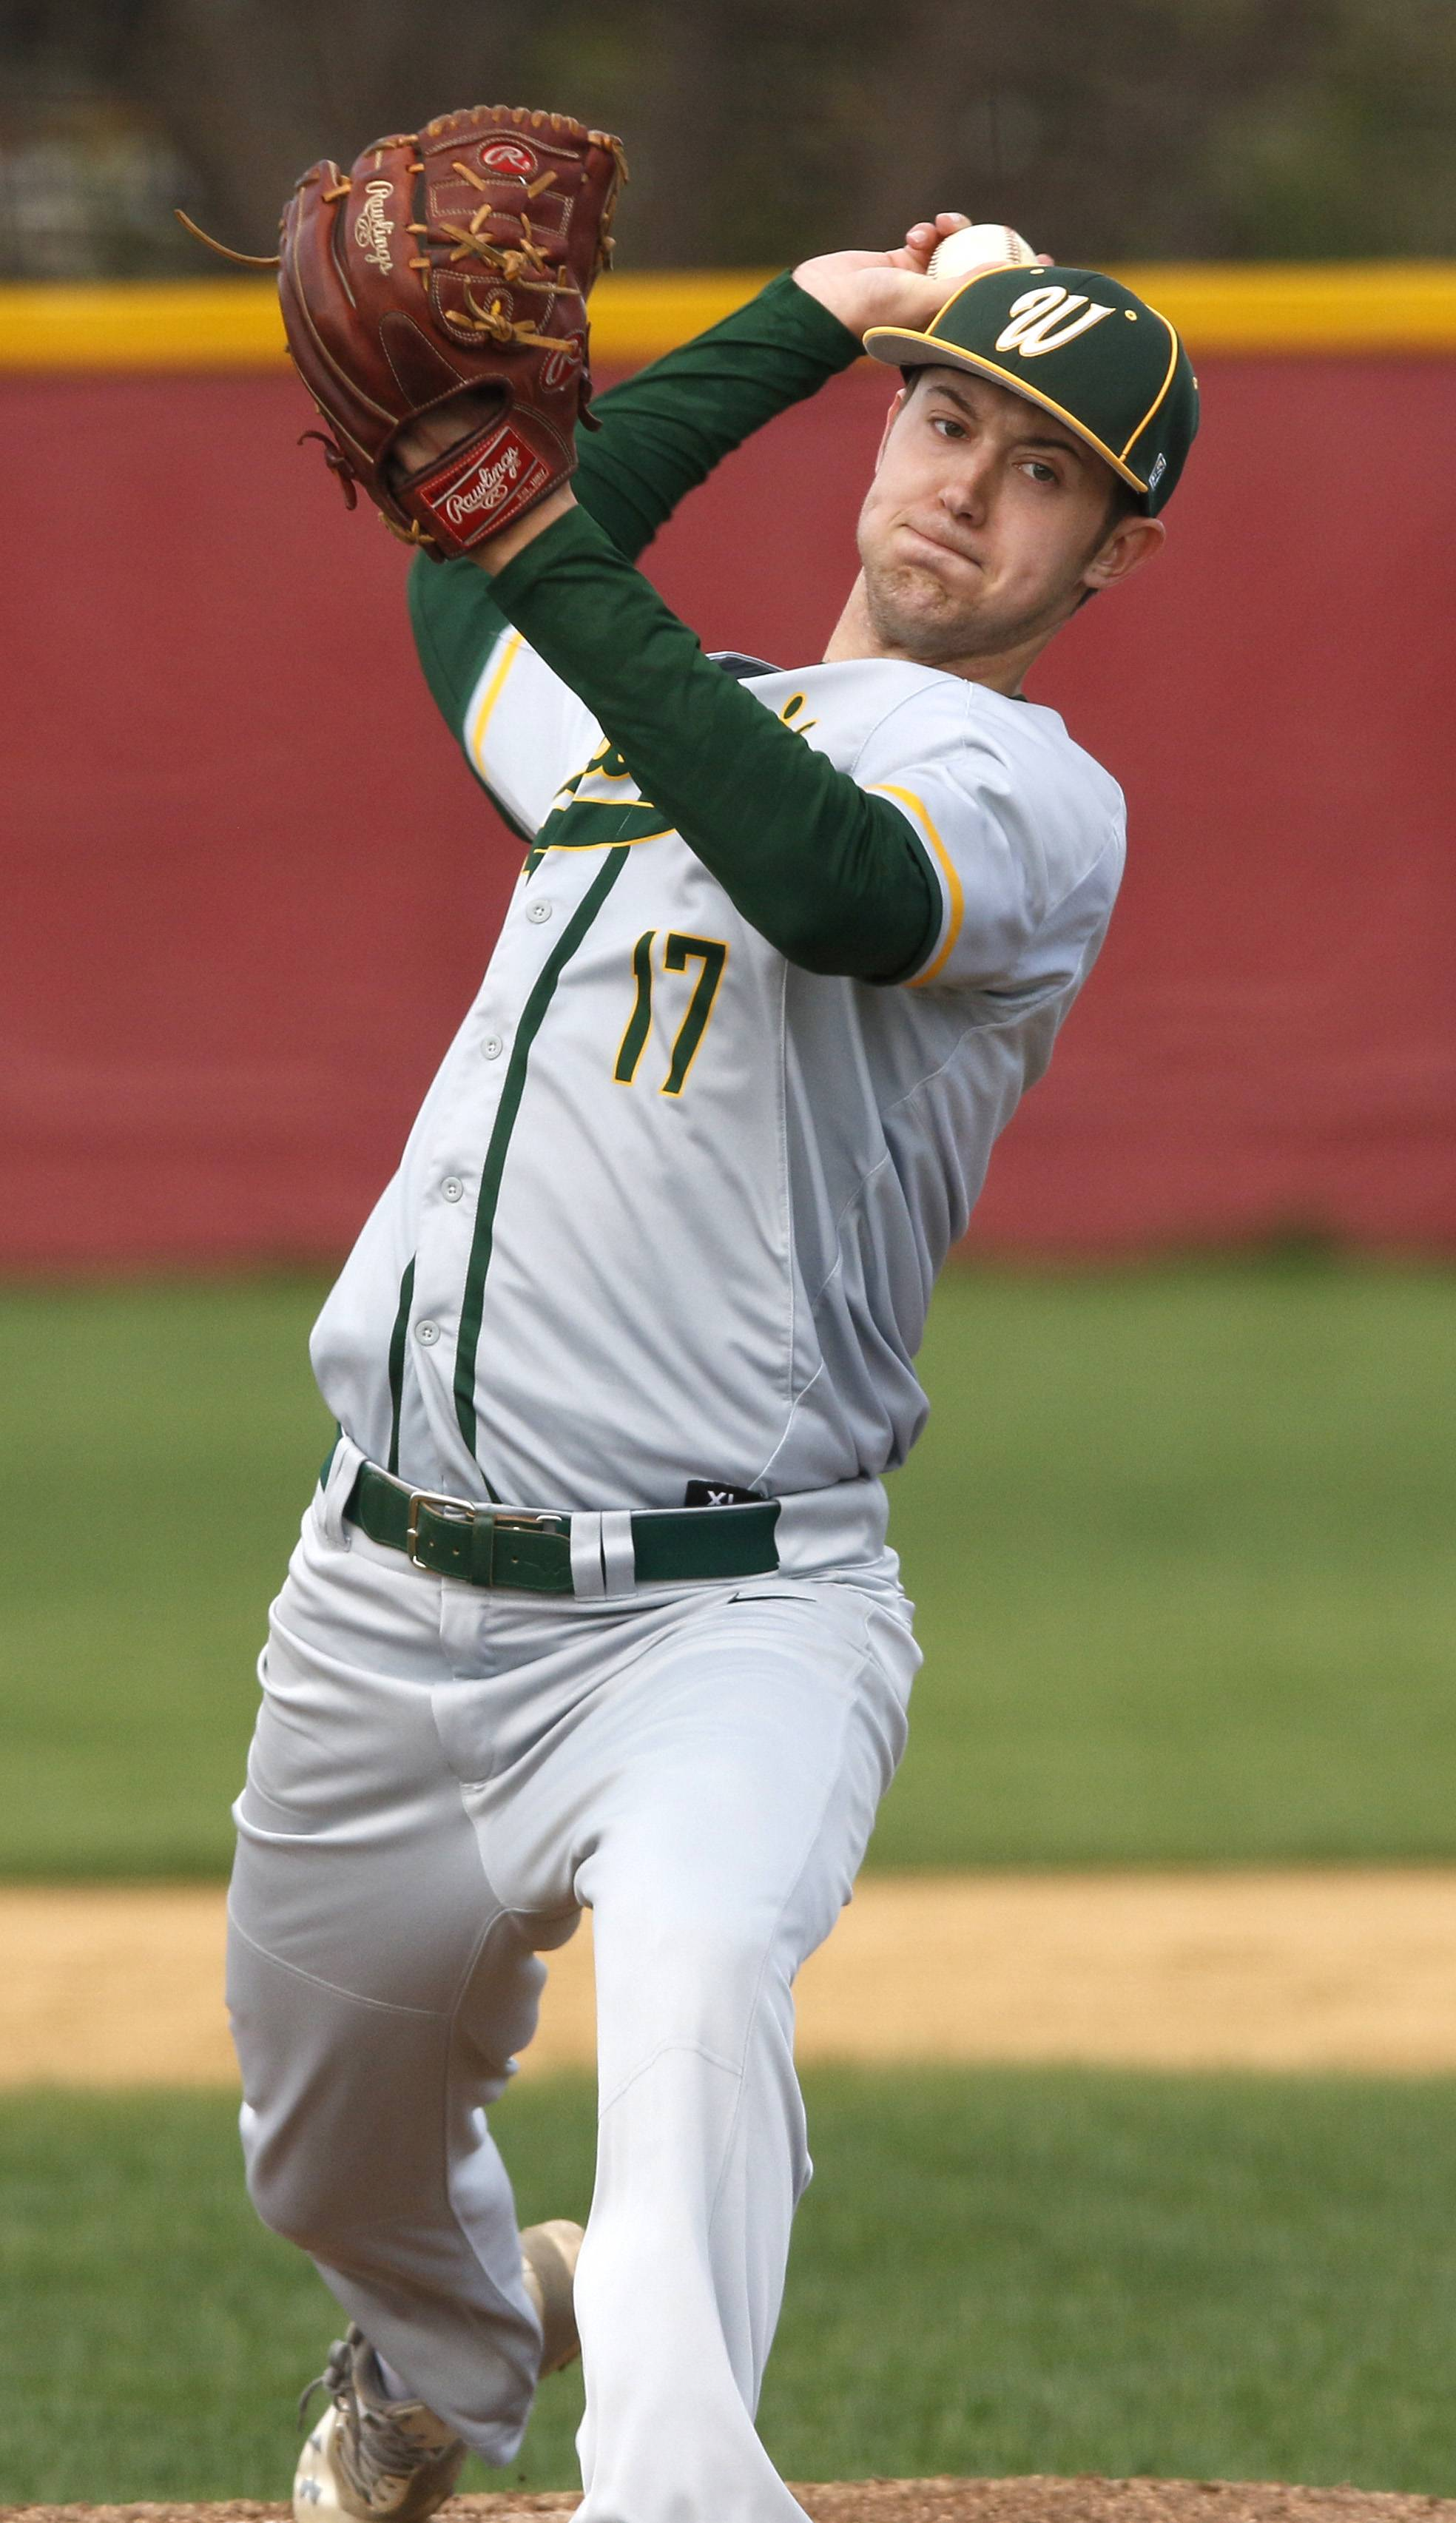 Waubonsie Valley's Alex Schram delivers a pitch against Naperville Central.